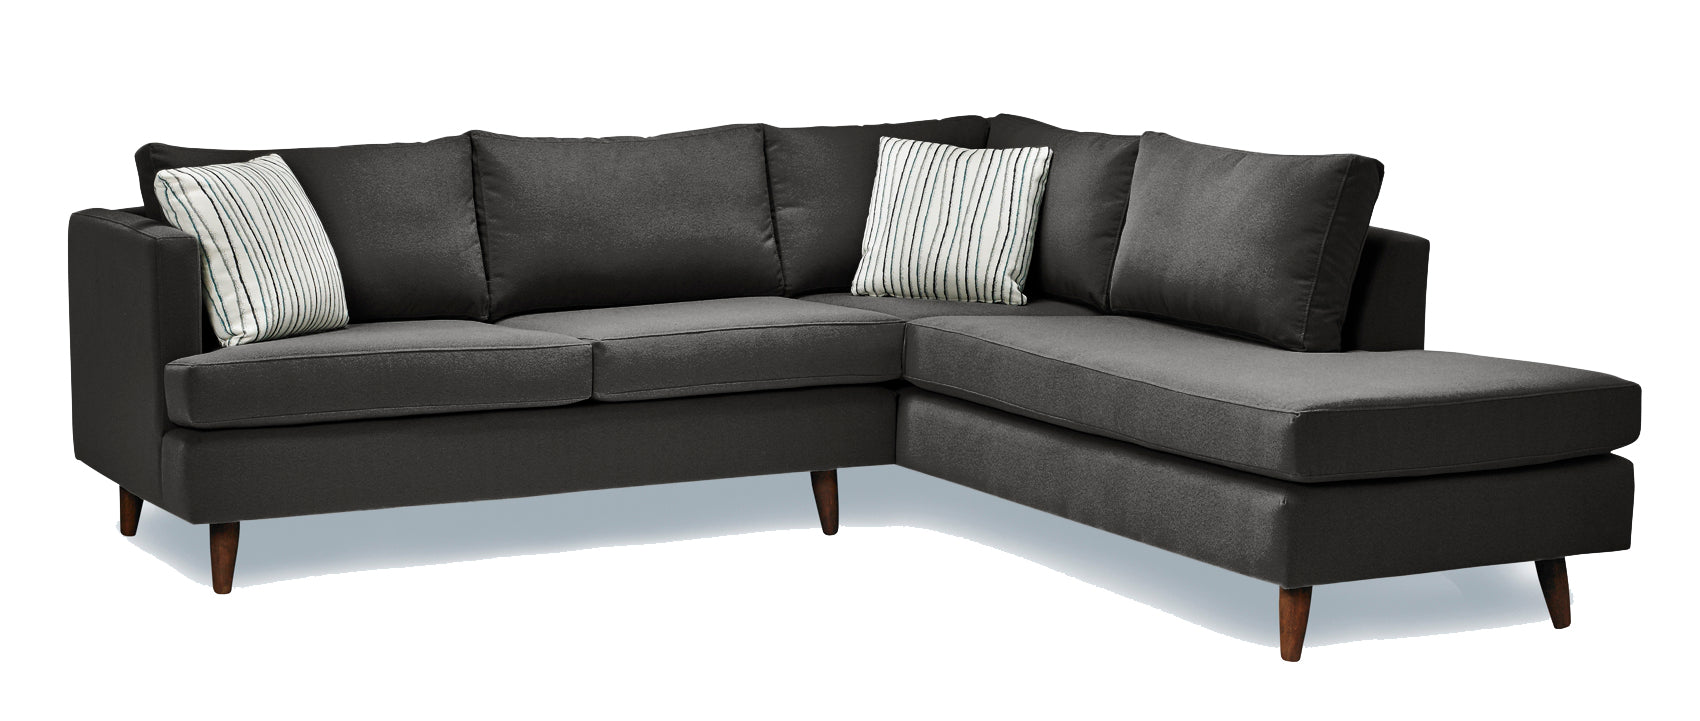 Eyra sectional